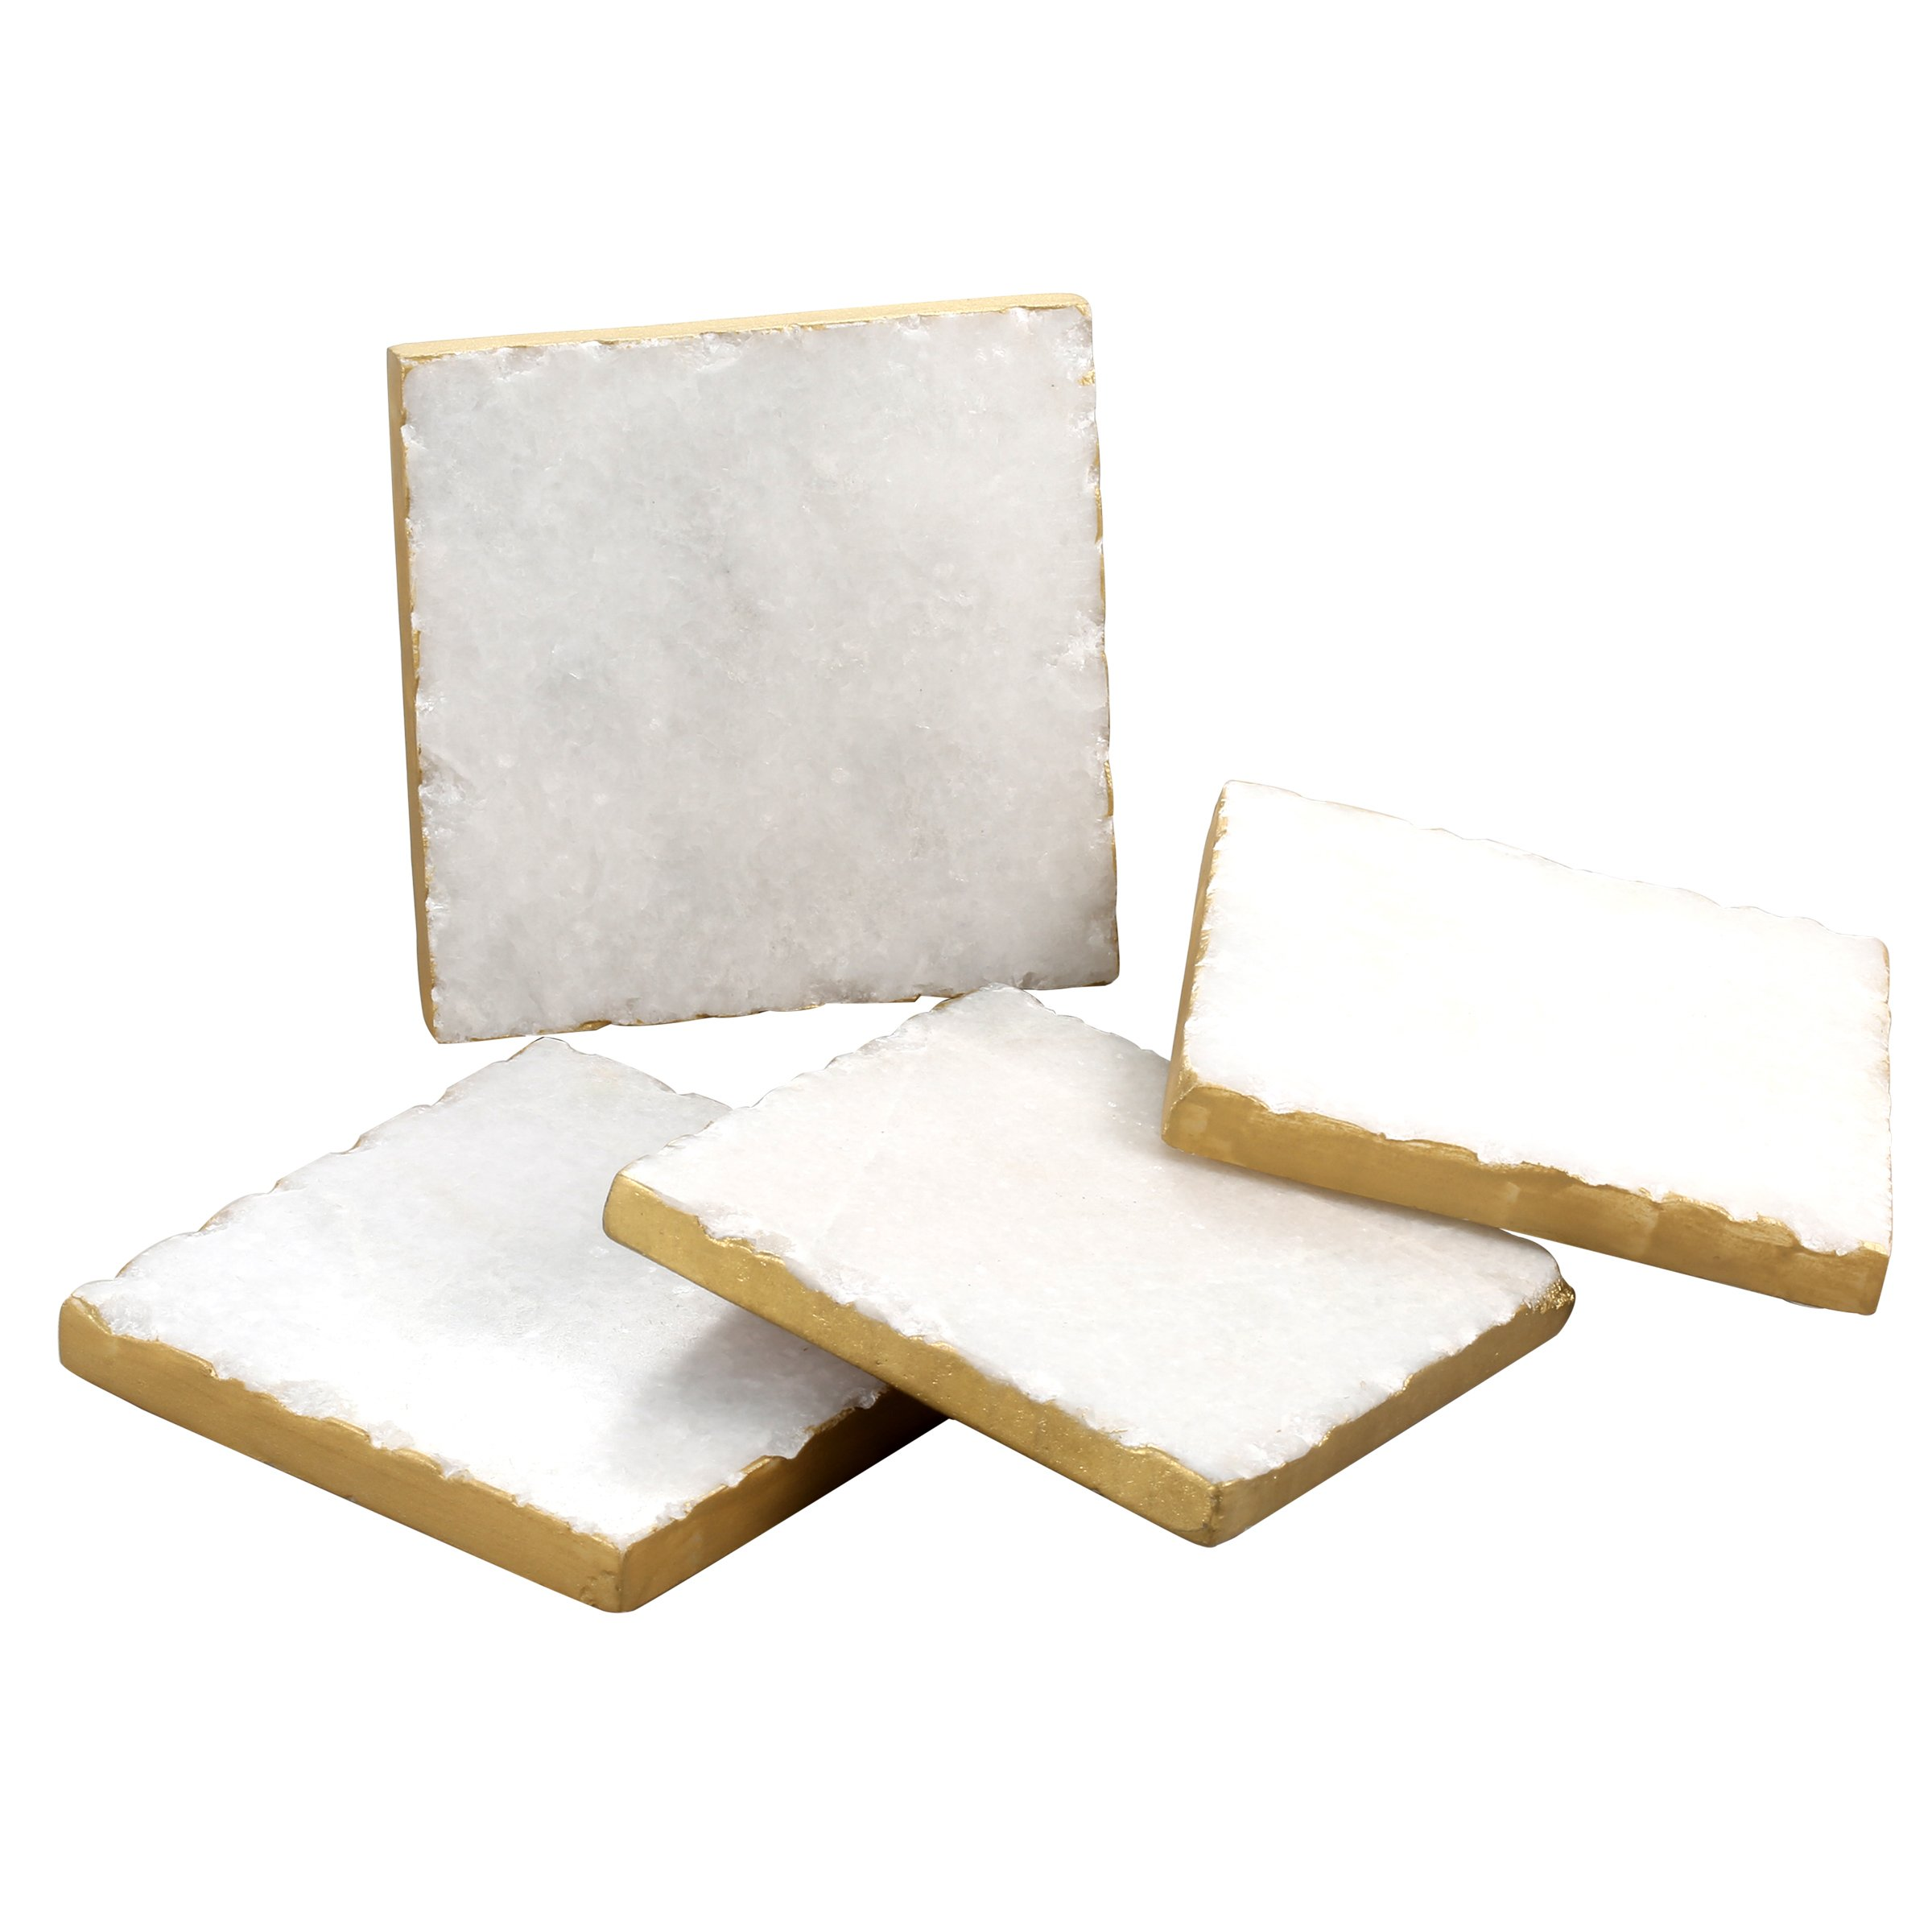 Thirstystone NMKA2170 Square White Marble/Gold Edged Coasters (Set of 4), Multicolor by Thirstystone